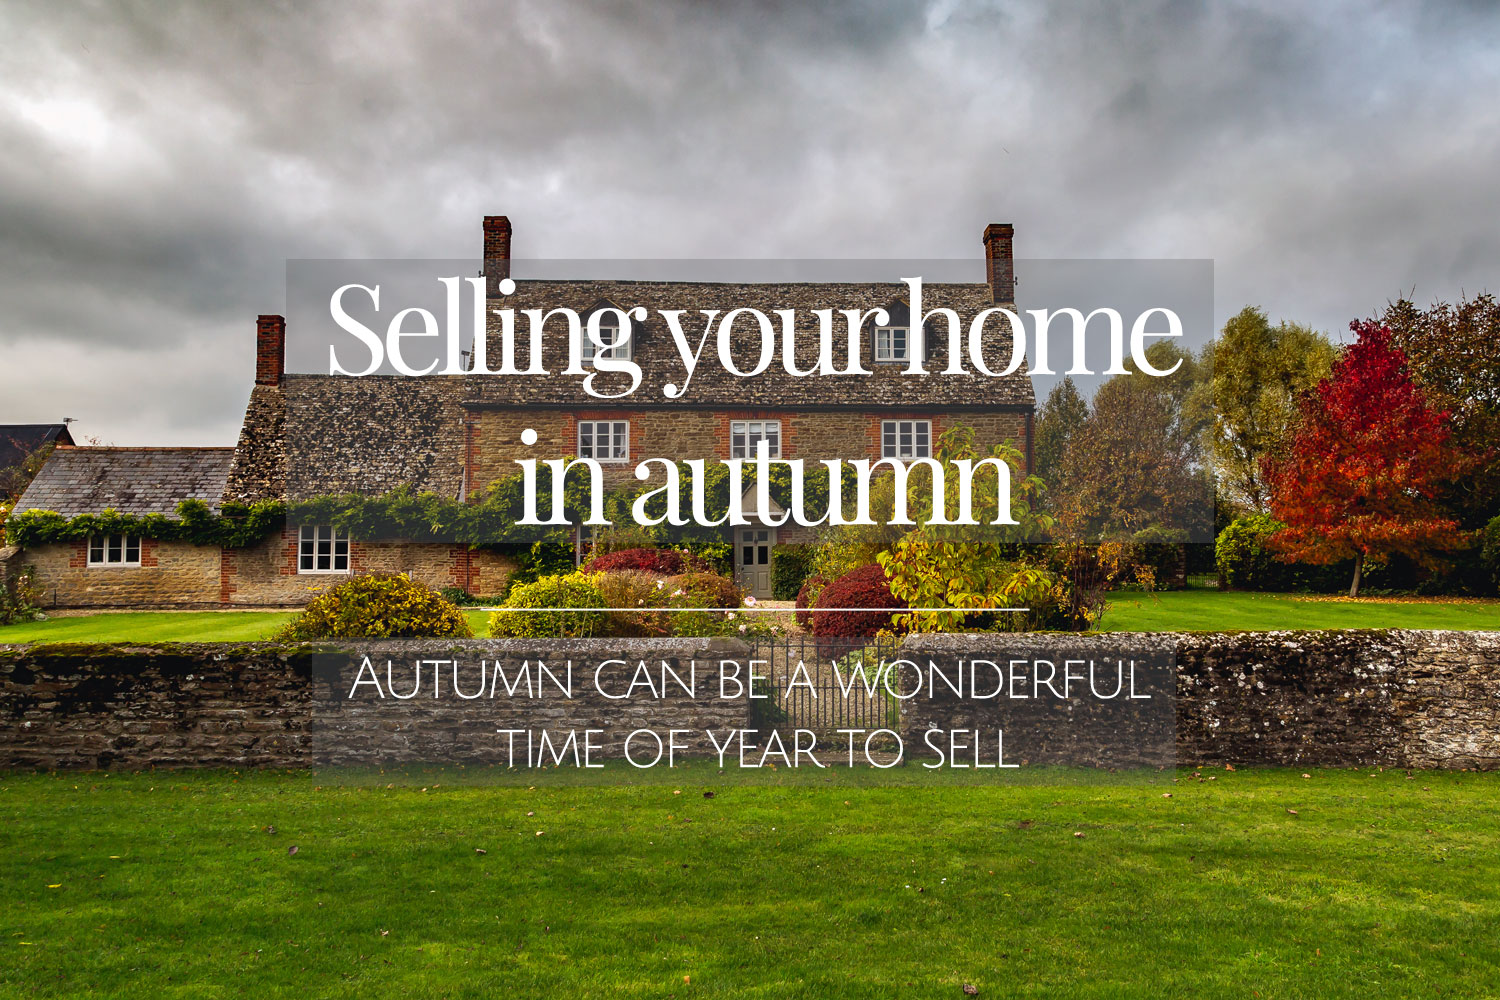 Selling-your-home-in-Autumn-feautred-image-1.2